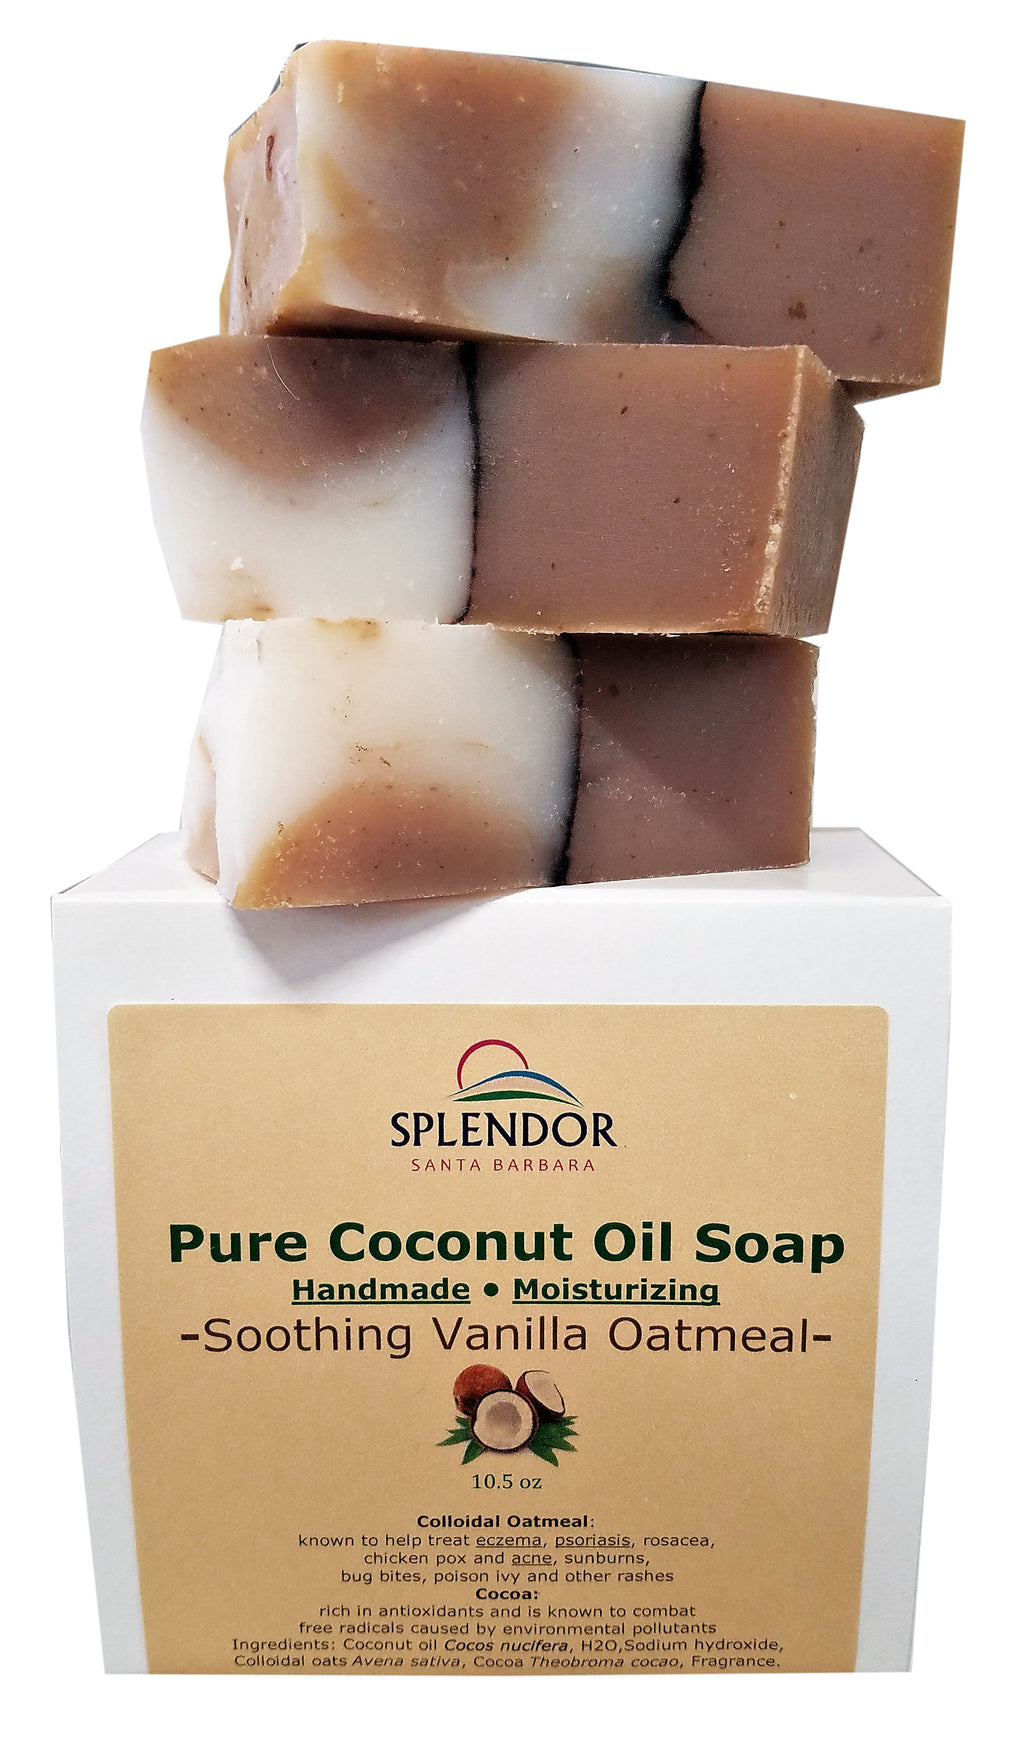 Splendor Soothing Vanilla Oatmeal Soap- Natural Coconut Oil Hand, Face & Body. Handmade, Vegan, Moisturizing, with Gluten-Free Oats and Antioxidant-Rich Cocoa